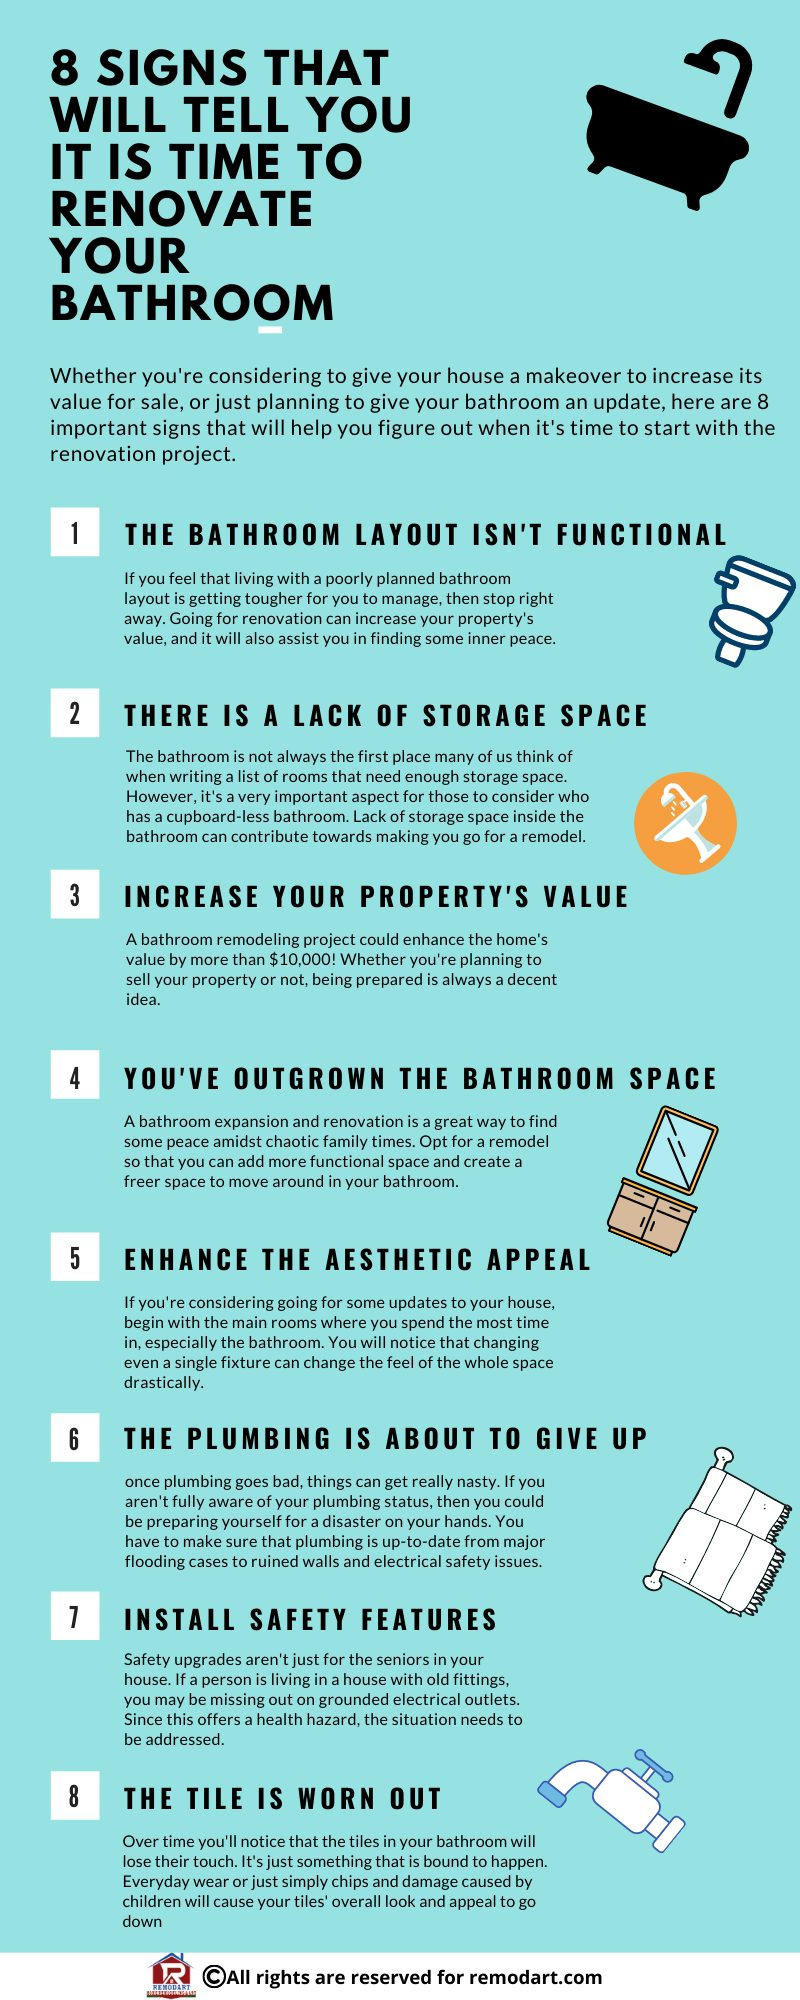 8 Signs That Will Tell You It Is Time To Renovate Your Bathroom